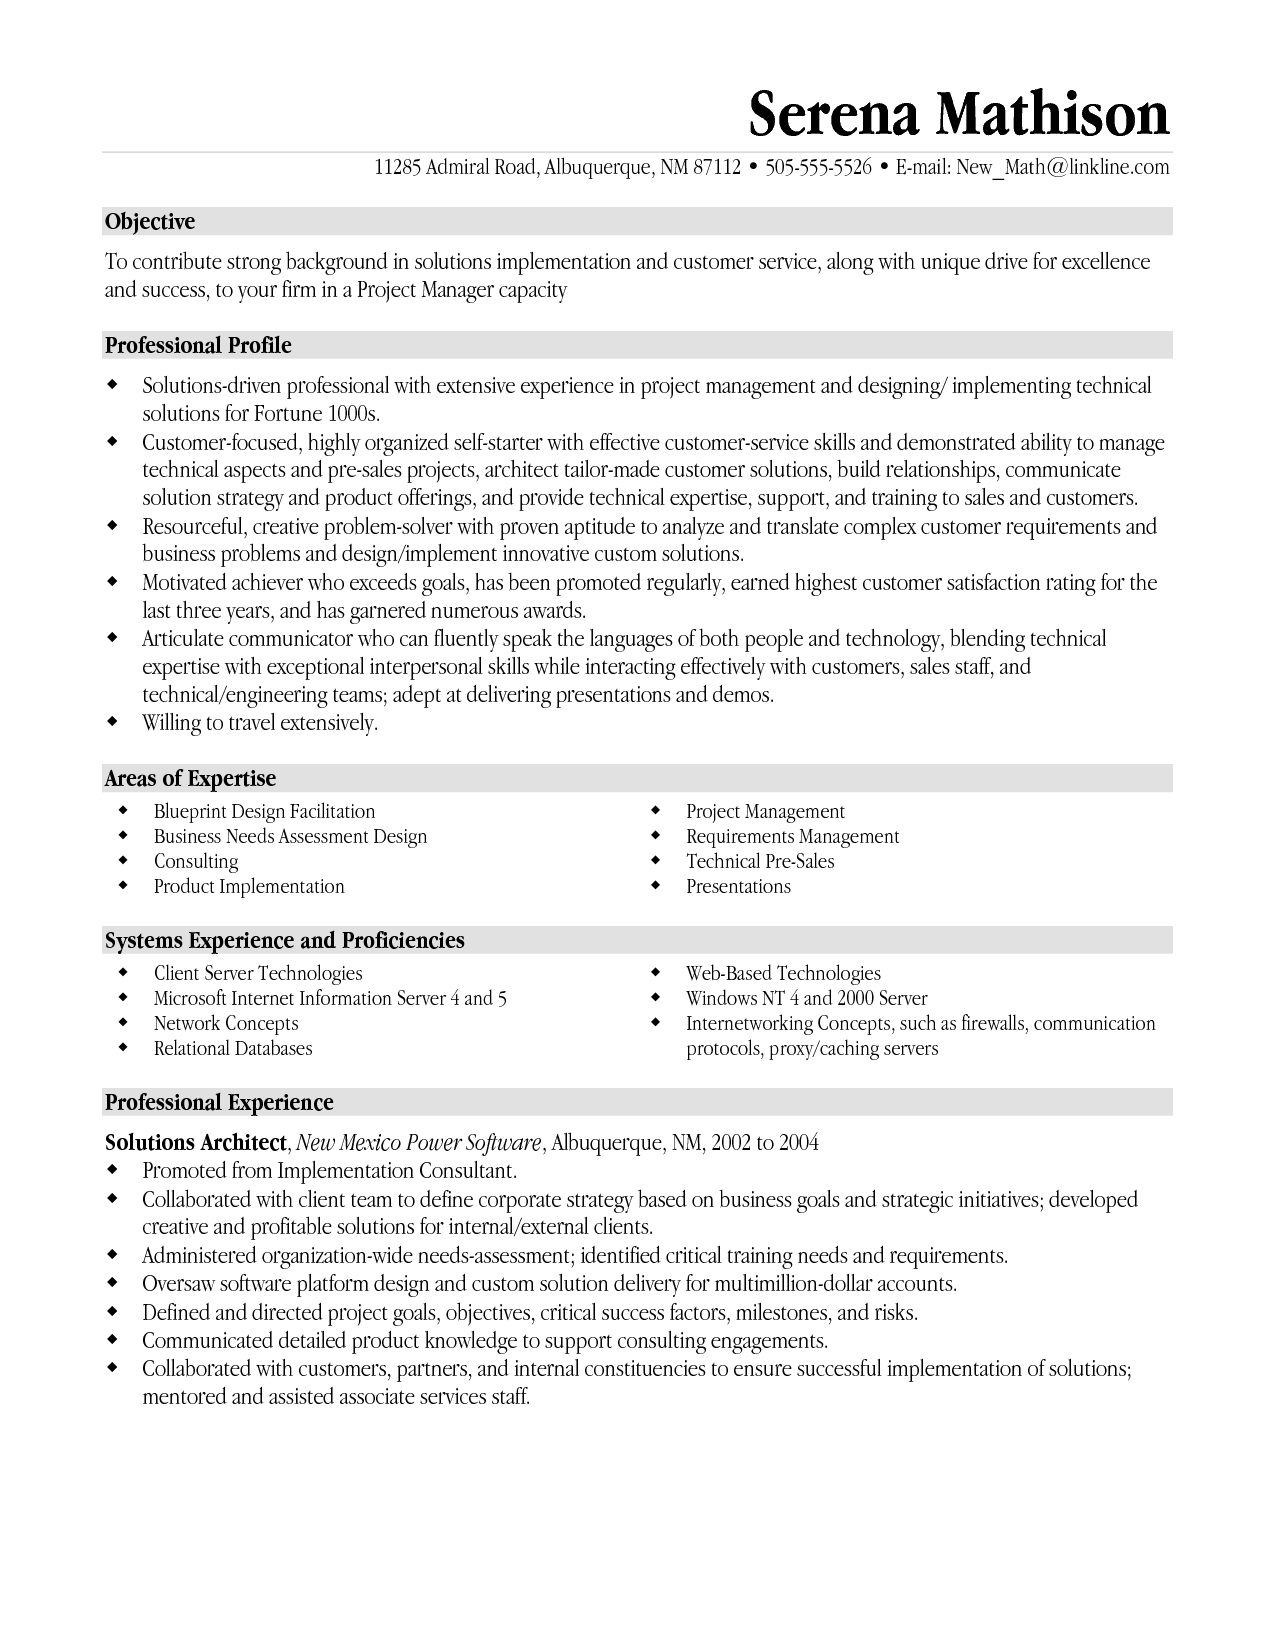 Project Manager Resume Objective Examples Resume Templates Project Manager Project Management